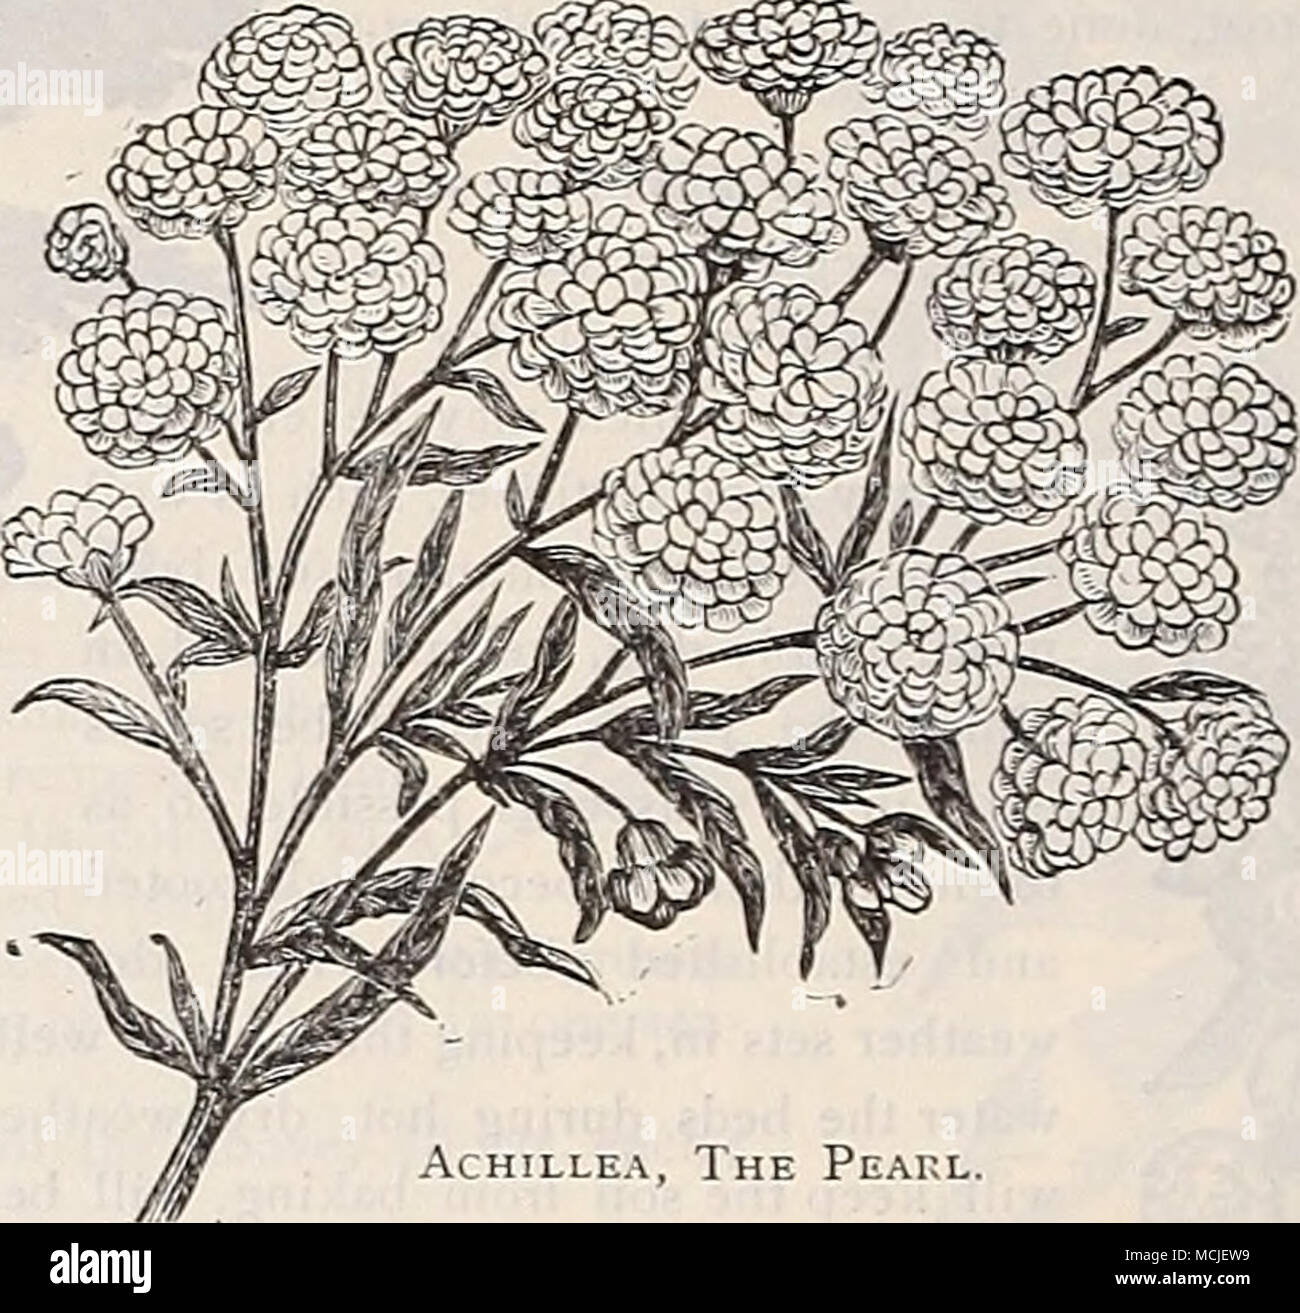 Achillea The Peakl Adoxis Beautiful Early Spring Flowering Plants